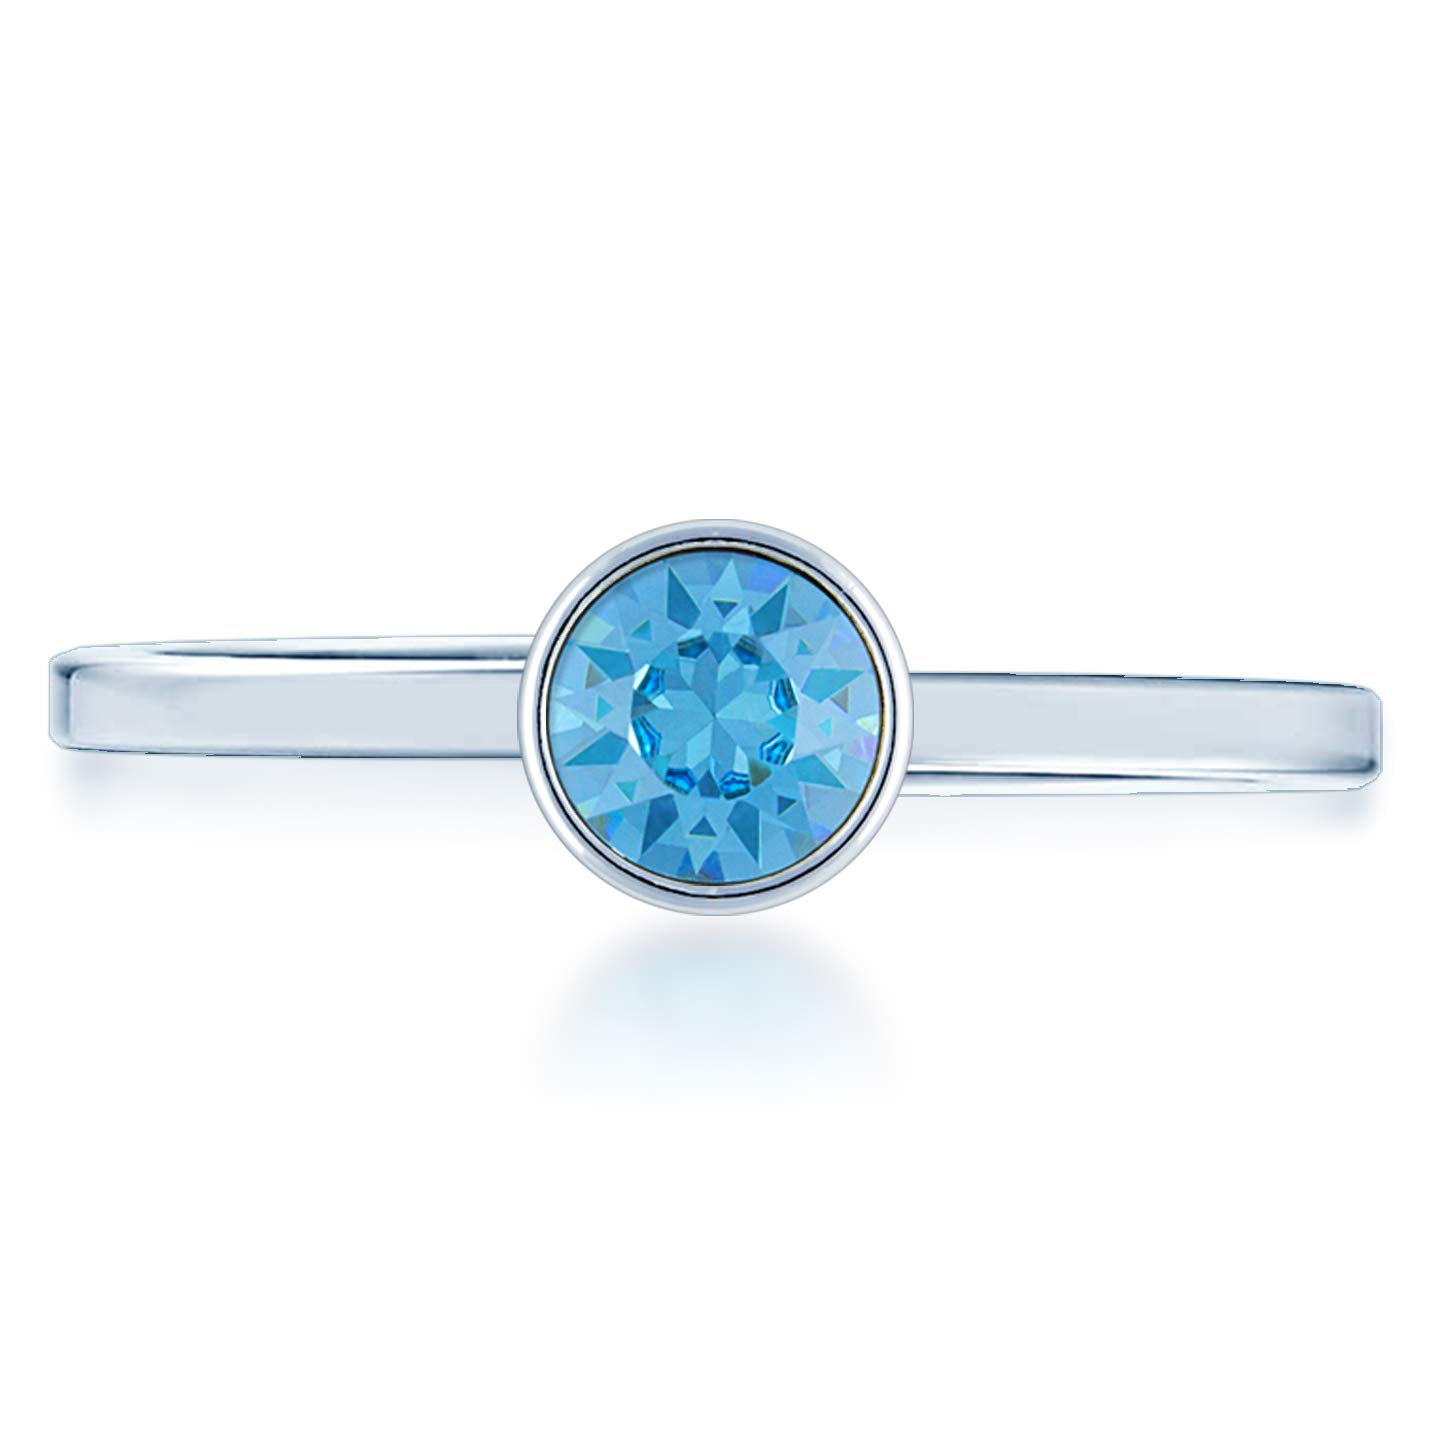 Ed Heart Adjustable Ring with Blue Aquamarine Round Crystals from Swarovski Silver Toned Rhodium Plated